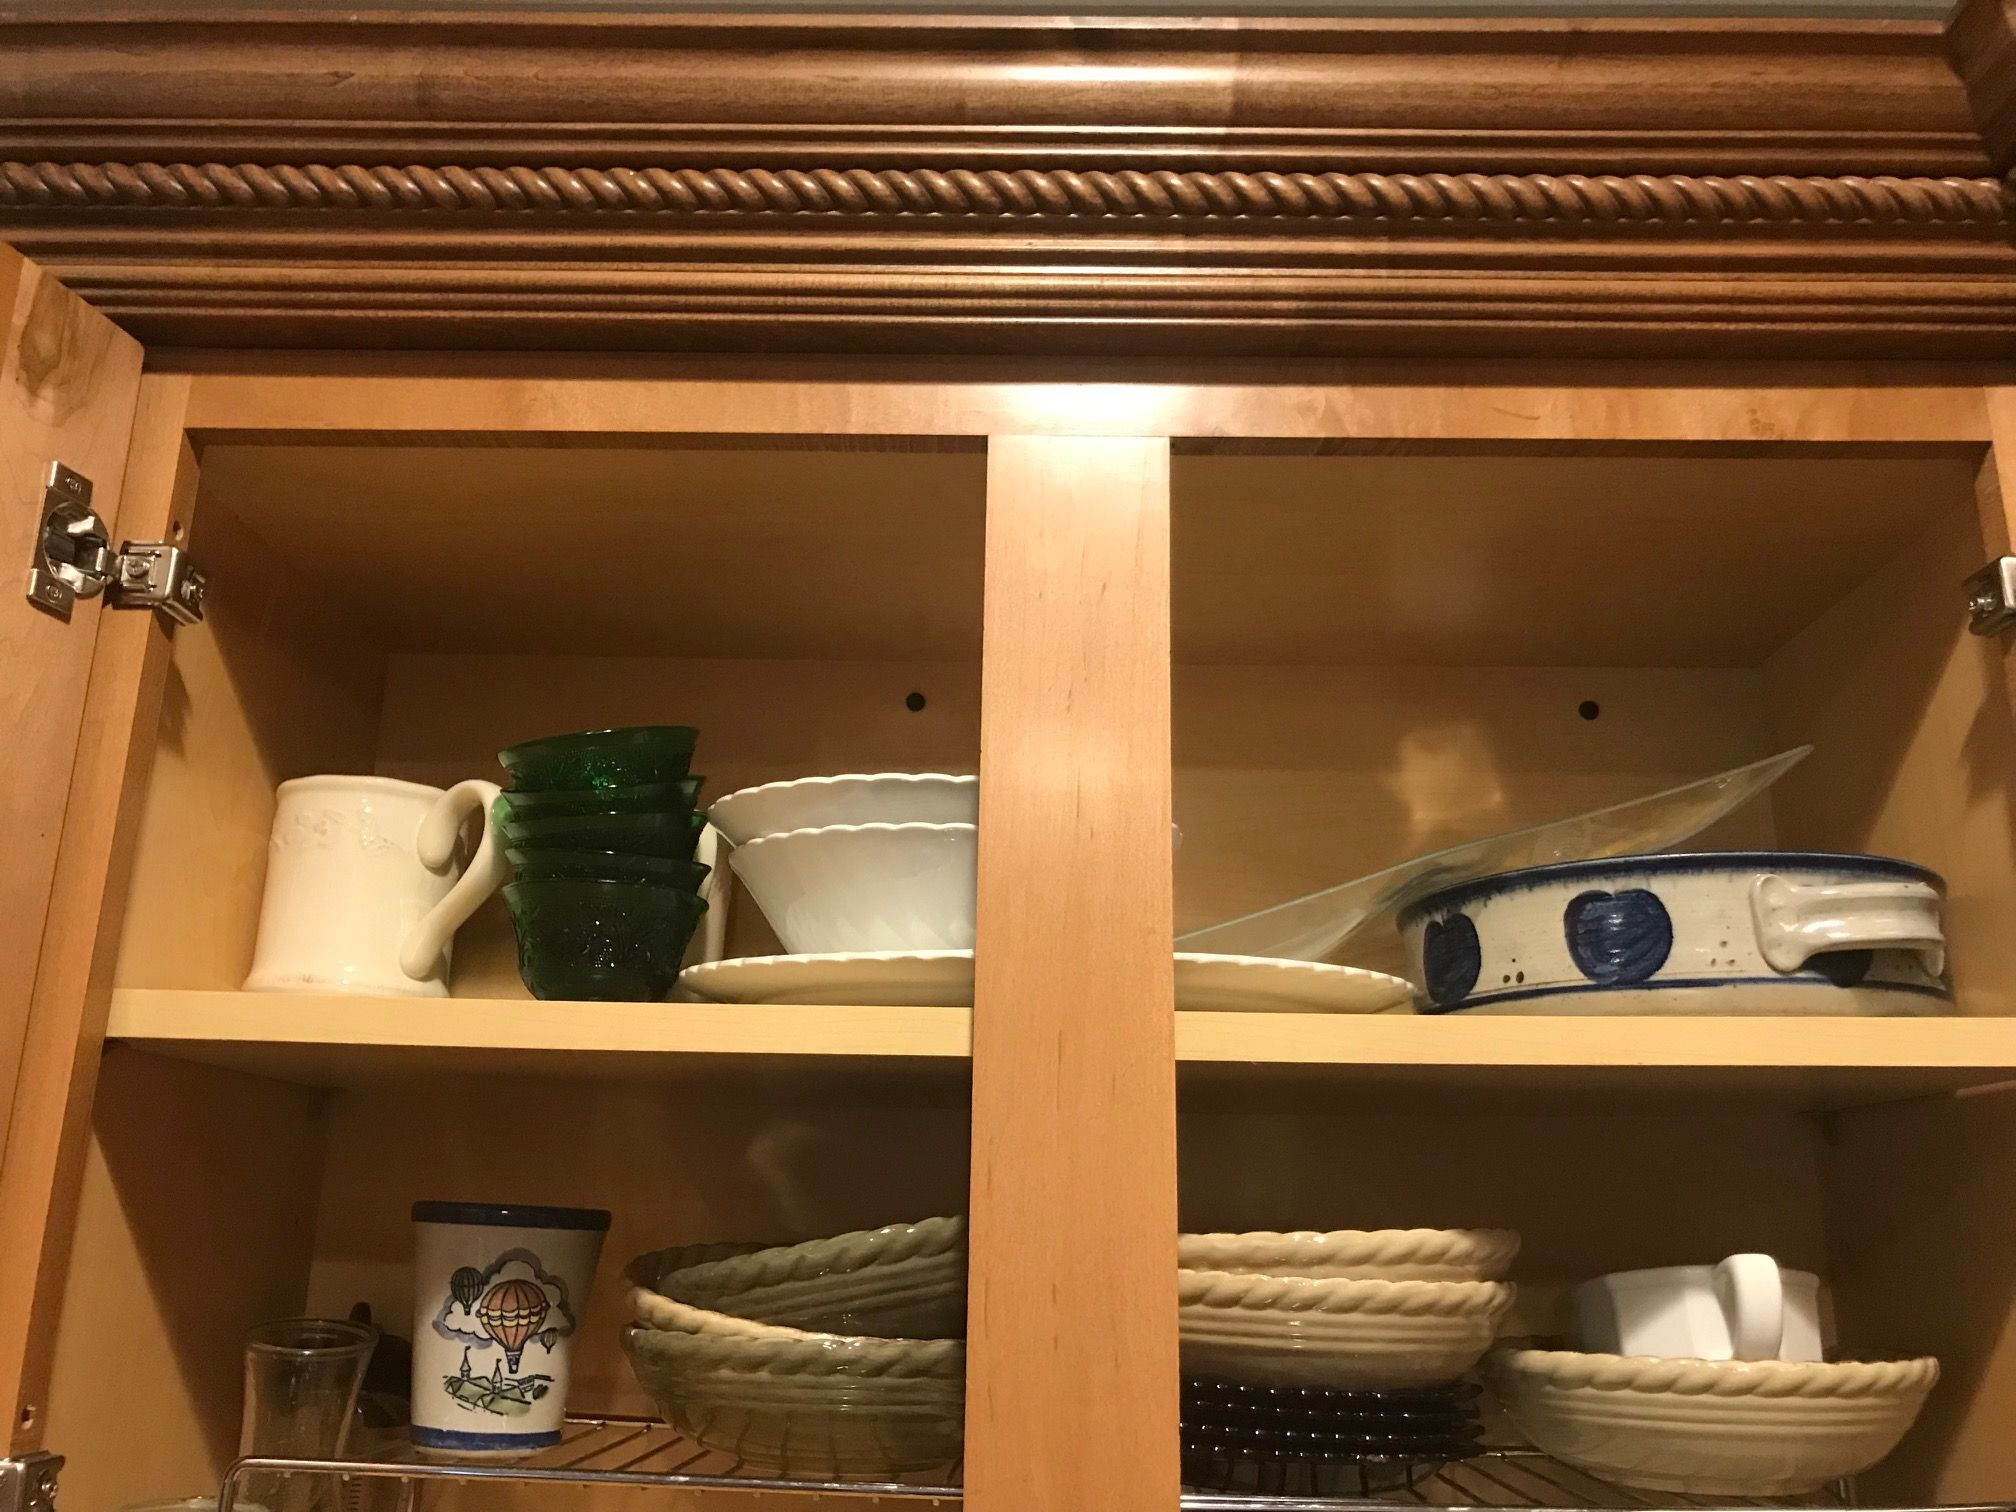 Replacement Kitchen Cabinet Shelving In 2020 Buy Cabinets